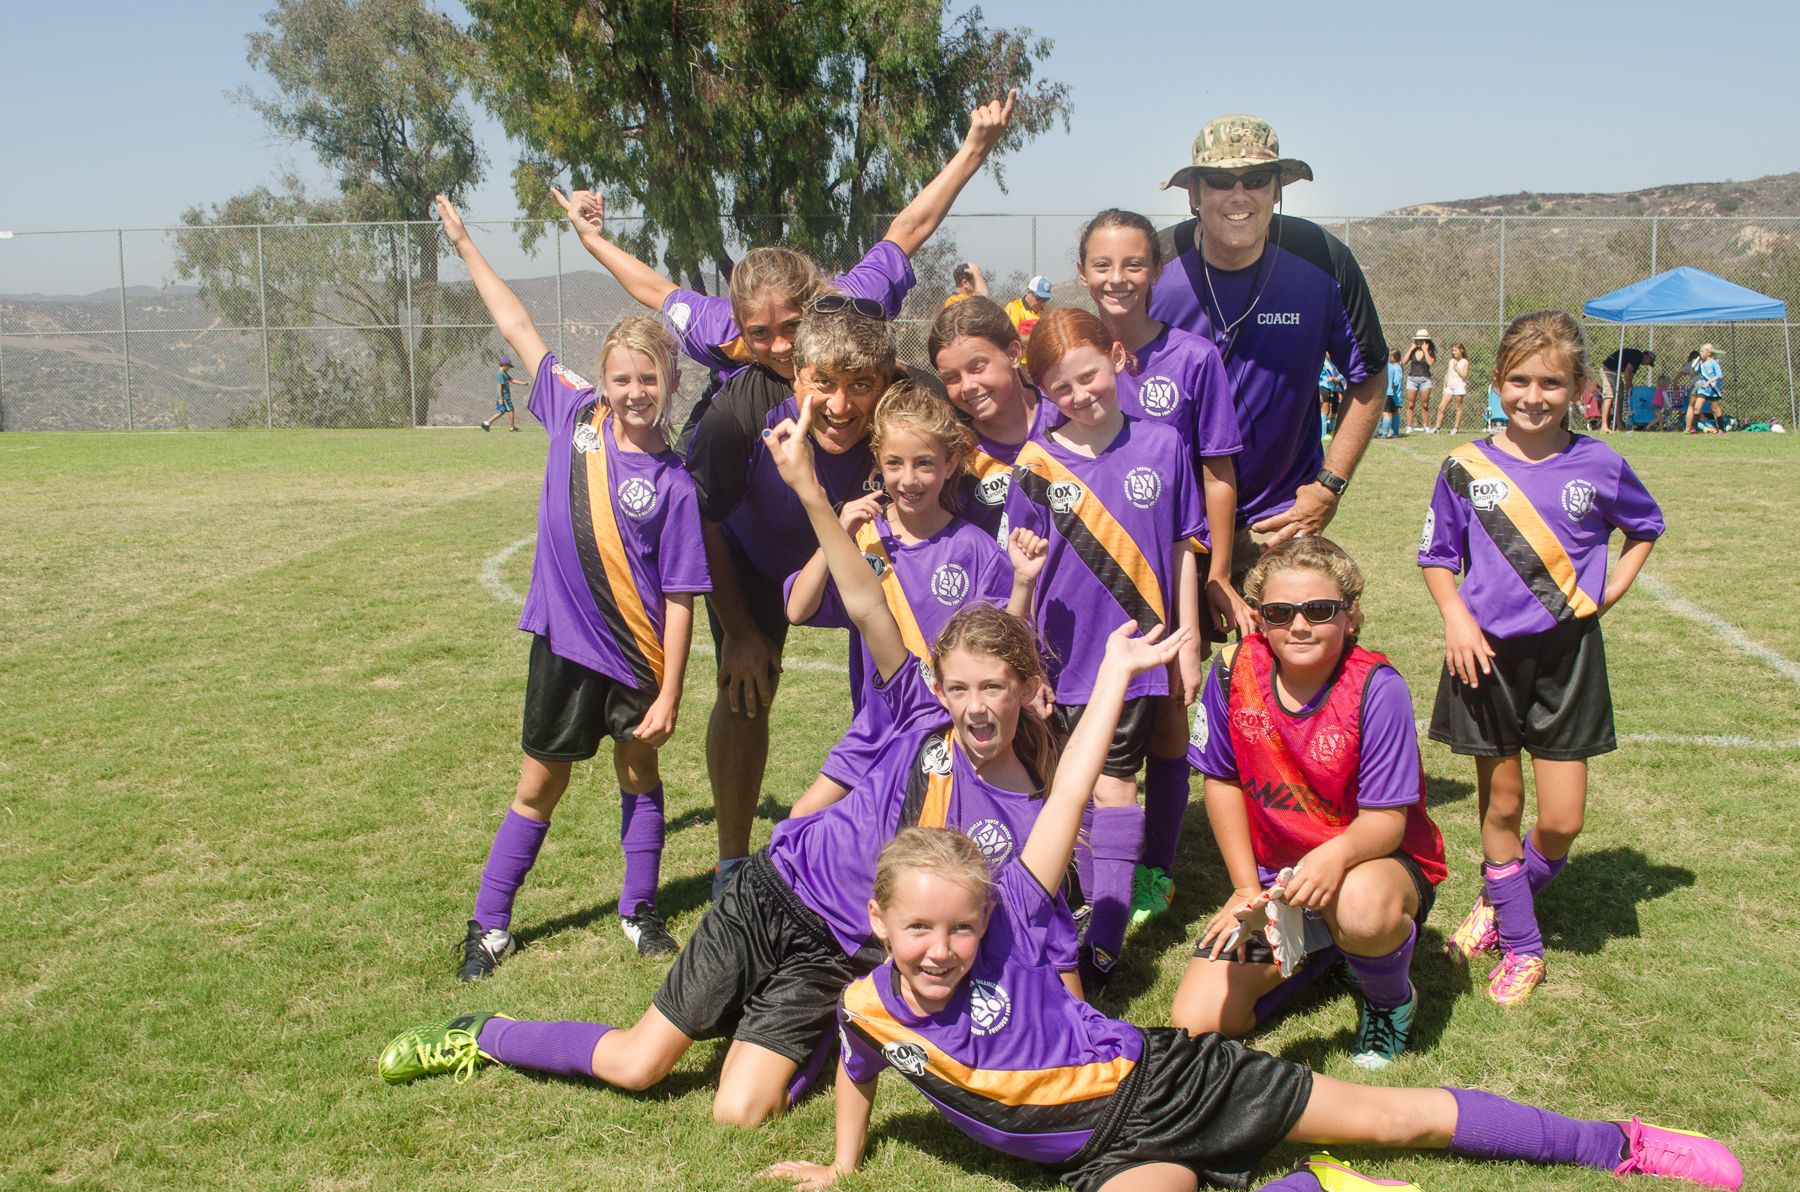 Thunder Waves, an under 10 AYSO team, celebrate their first place win in the regular season. From left, Ava Steris, Siena Jumani, Coach David Jumani, Maris Morgan, Izzy Gray, Alexa Sarkisian, Hadley Hunt, Allie Nottage, Marlena Steinbach, Natalie Boyd, Coach Chris Boyd and Sophia Billy